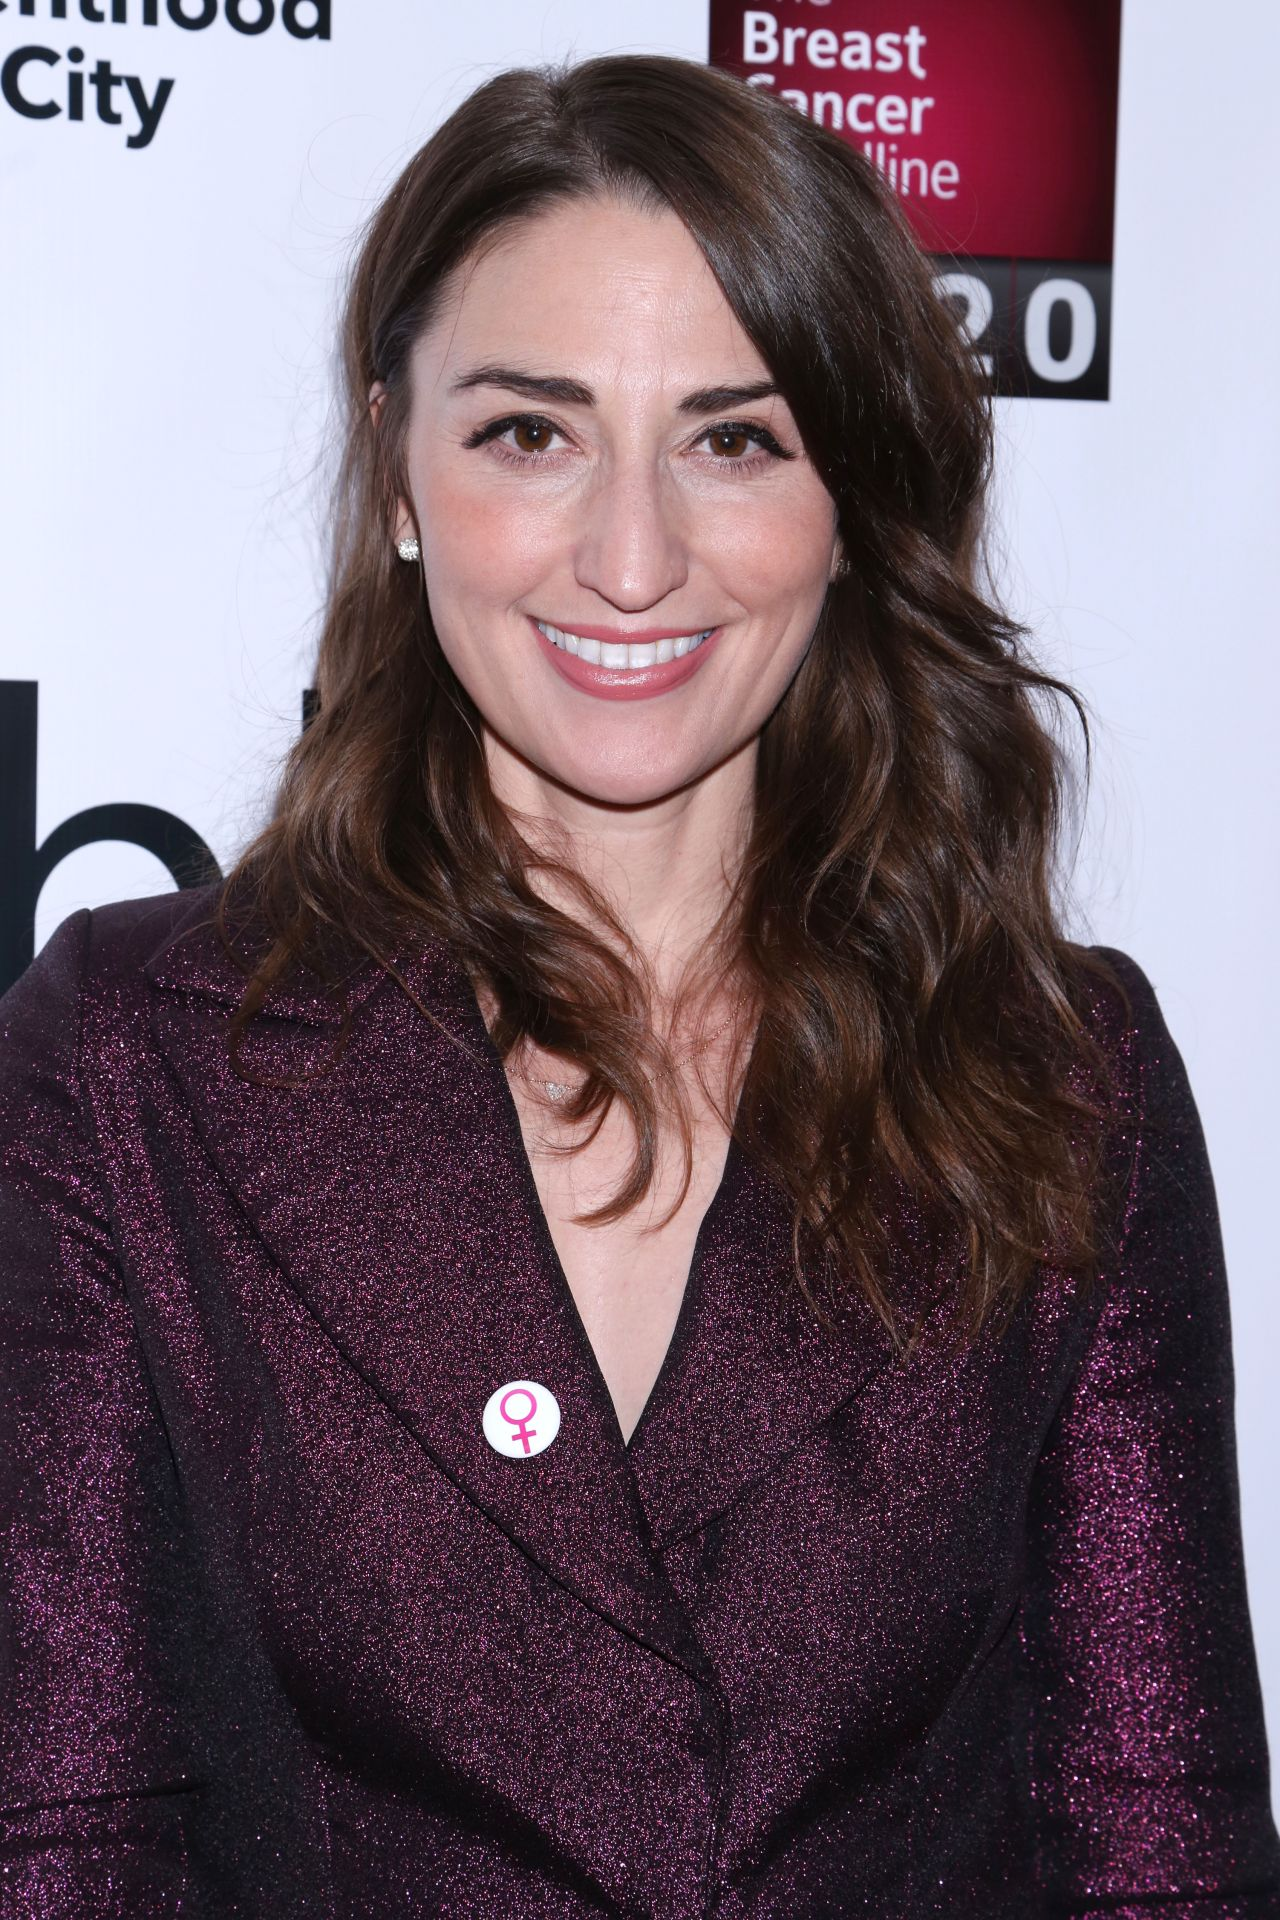 Sara Bareilles nudes (18 images) Boobs, 2015, braless